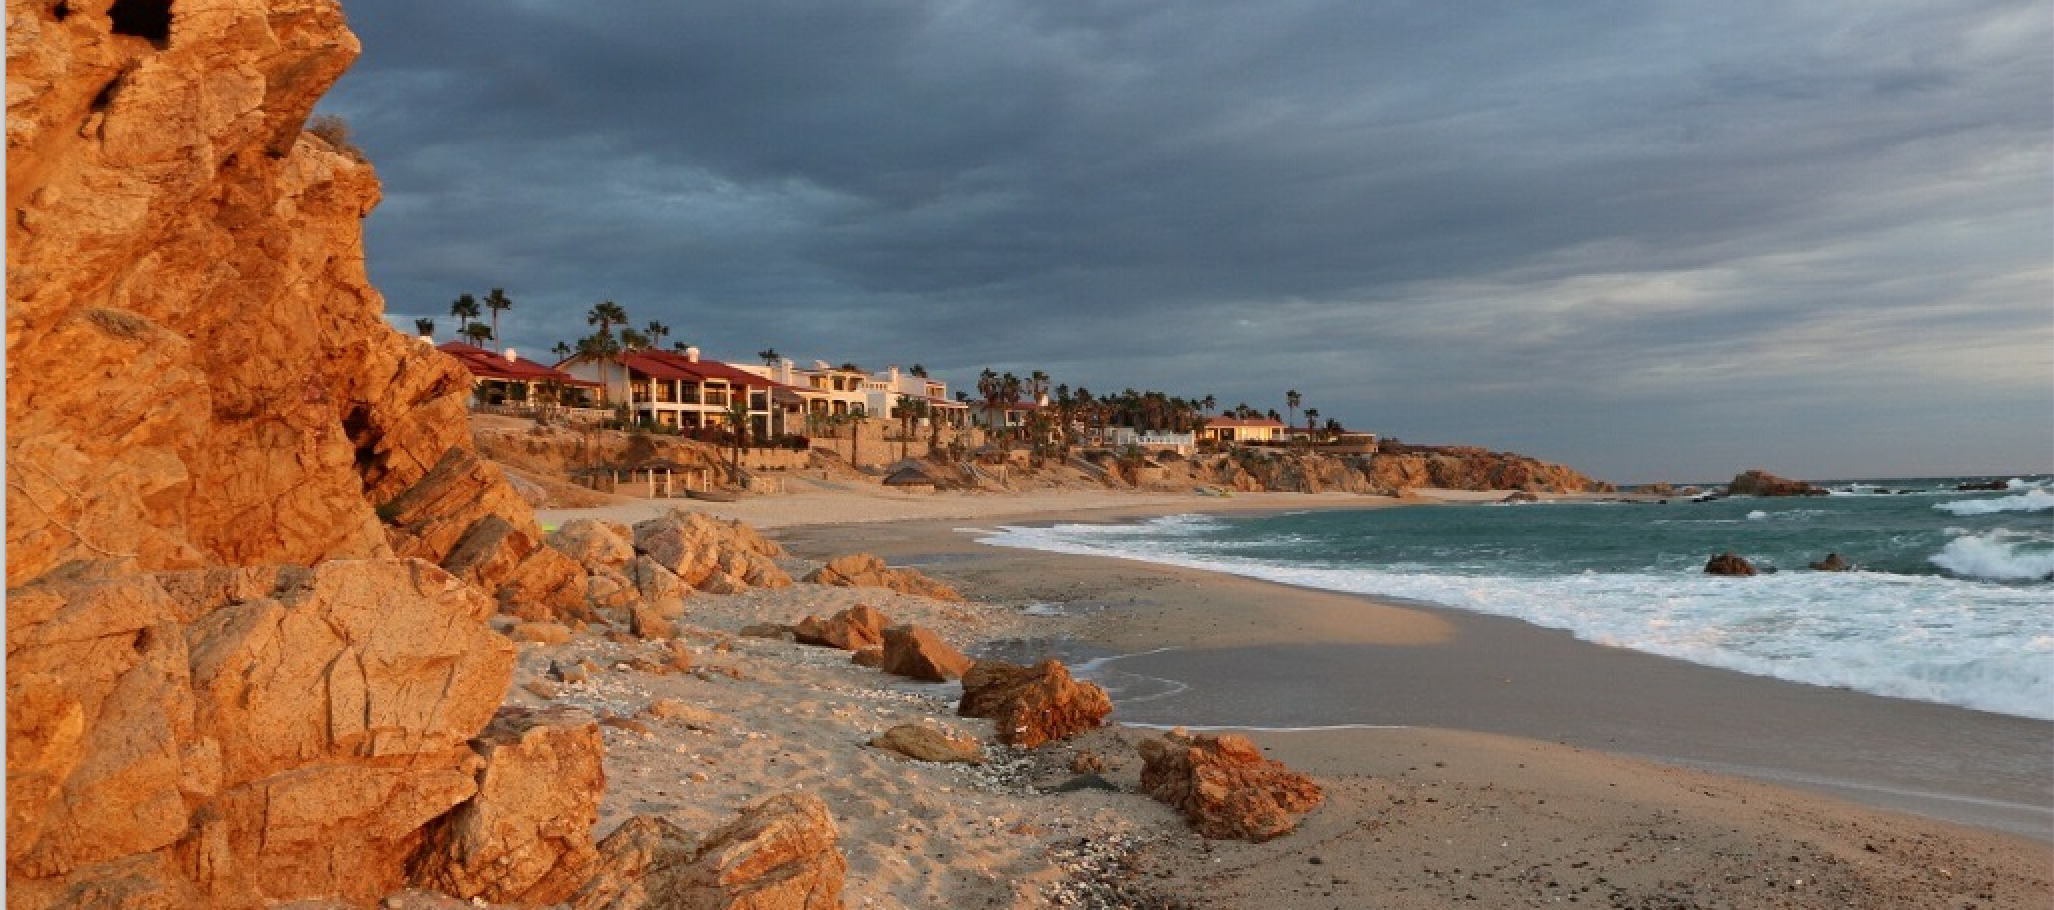 A photo overlooking a beach in Cardiff, California displaying the cliffs, beach, and coastal homes. Image courtesy of project interviewees.